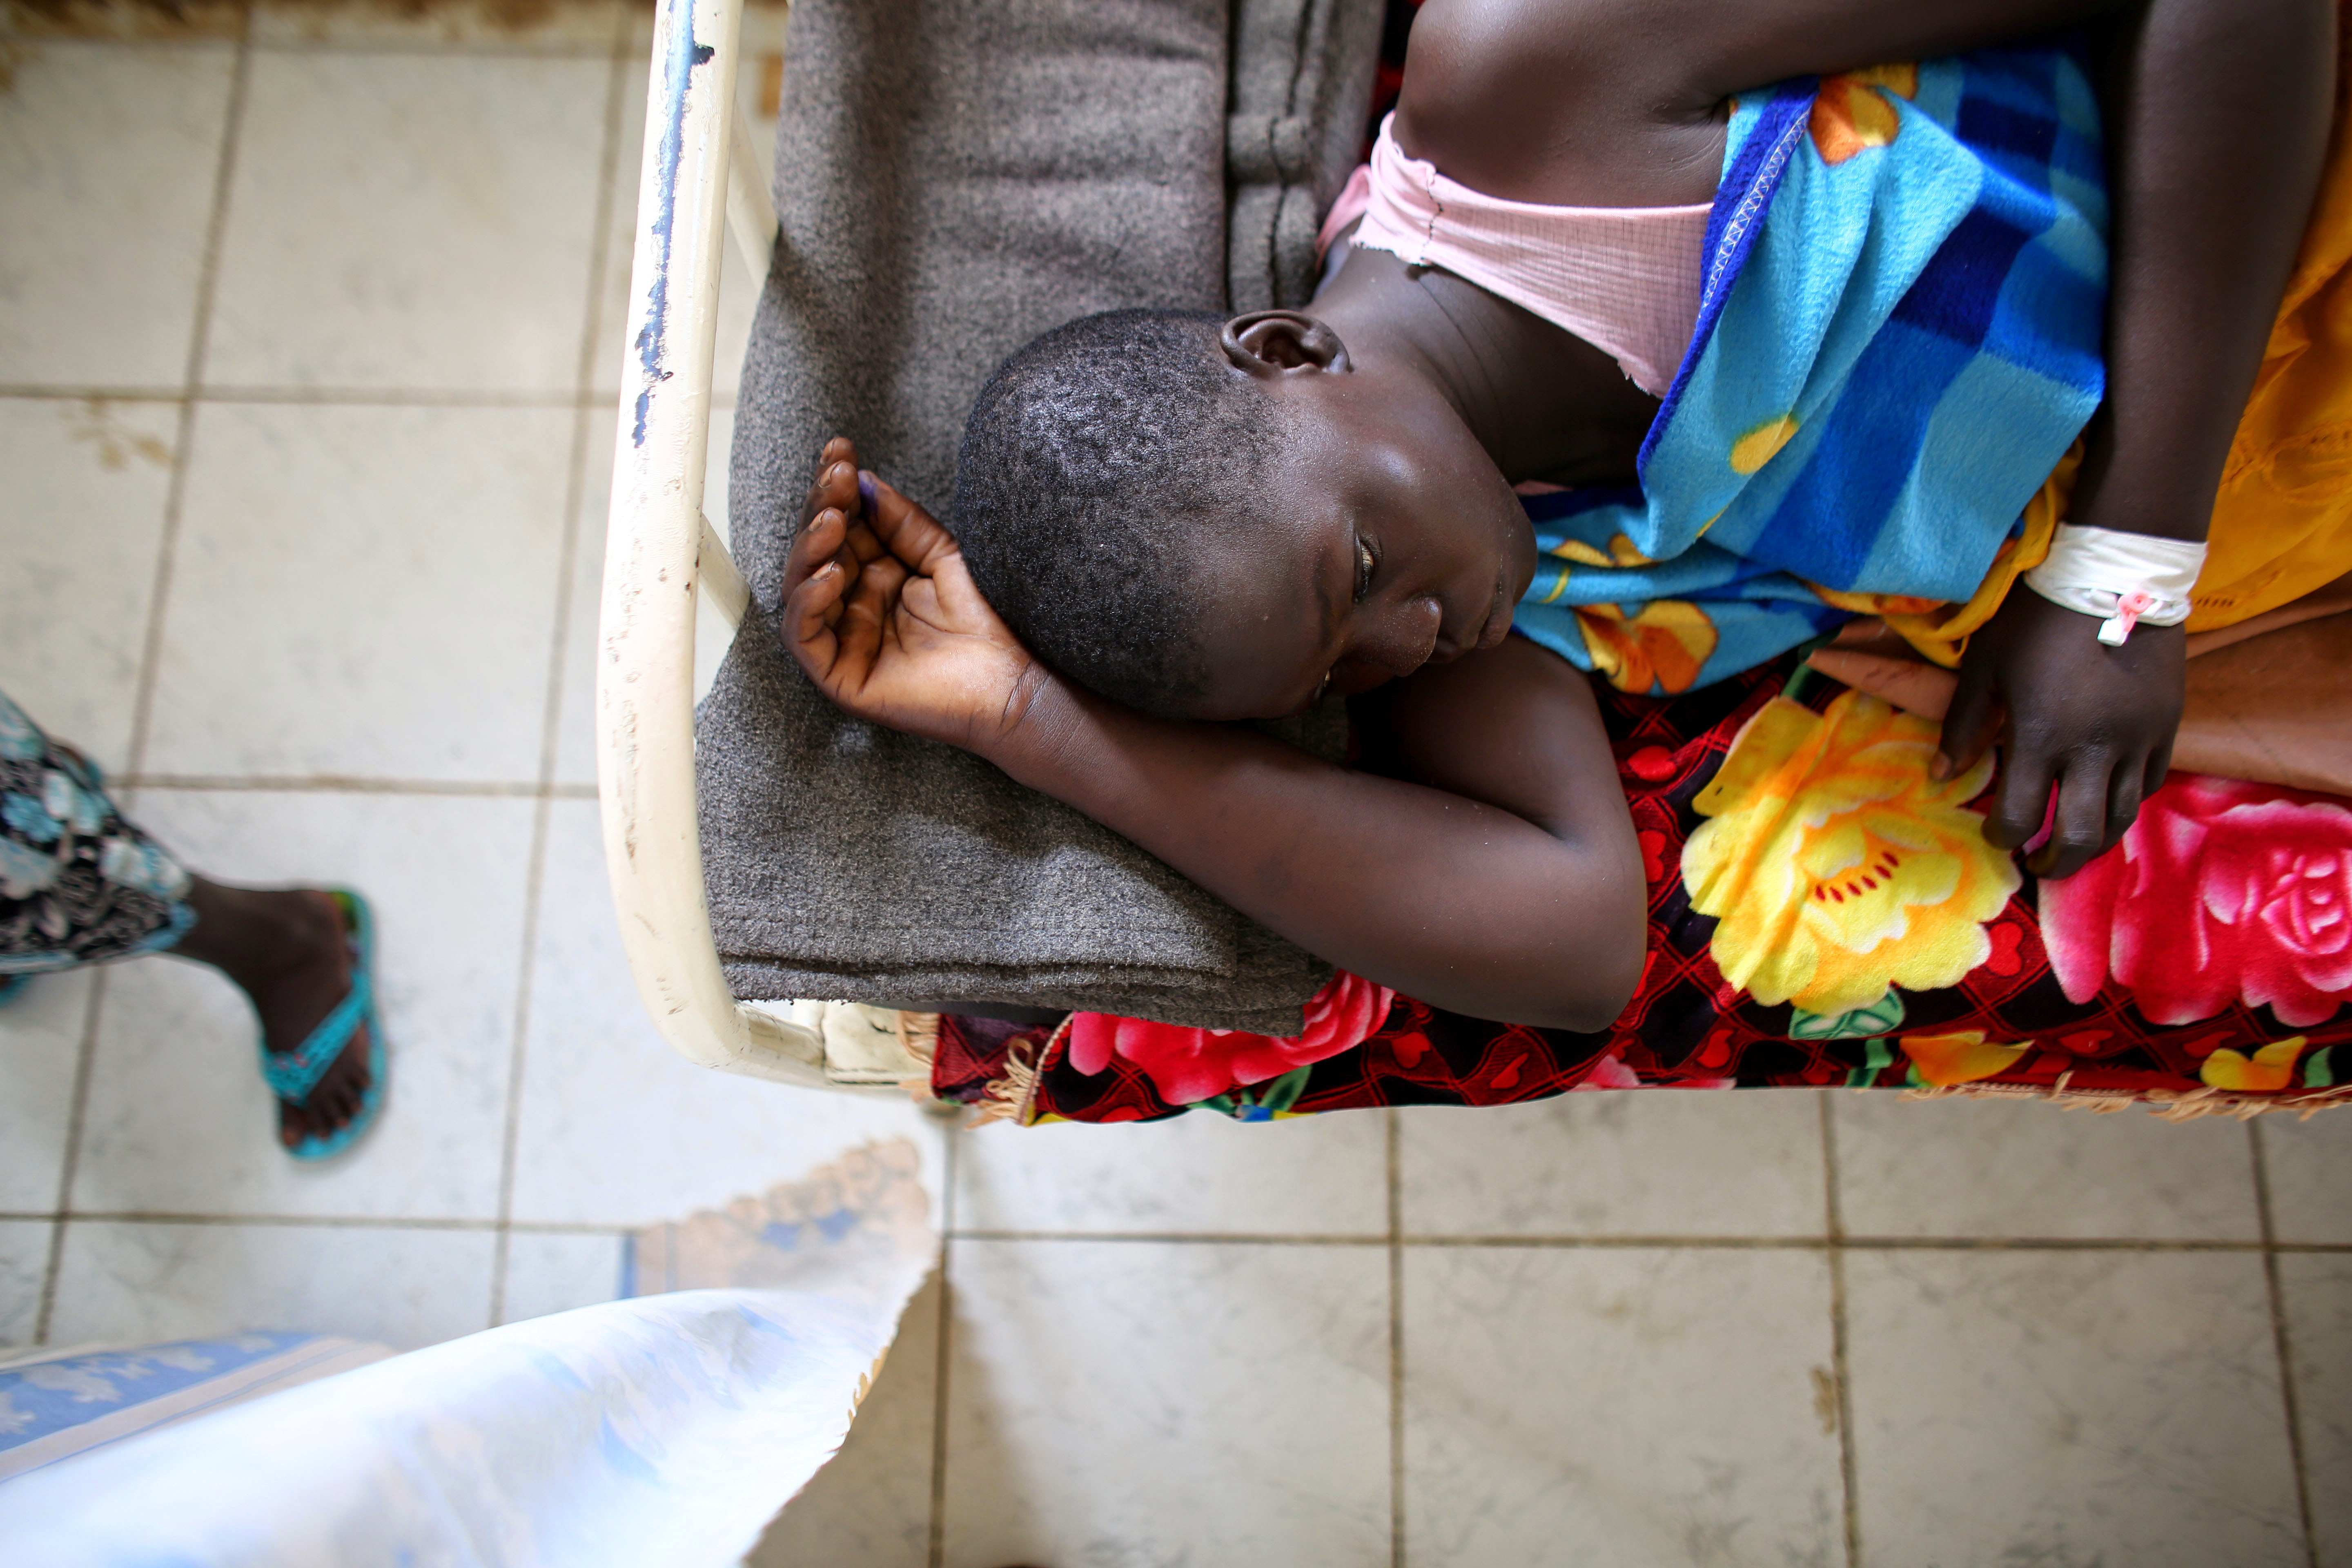 RS560_N37A6166-South-Sudan-forgotten-crises-2016-Jan